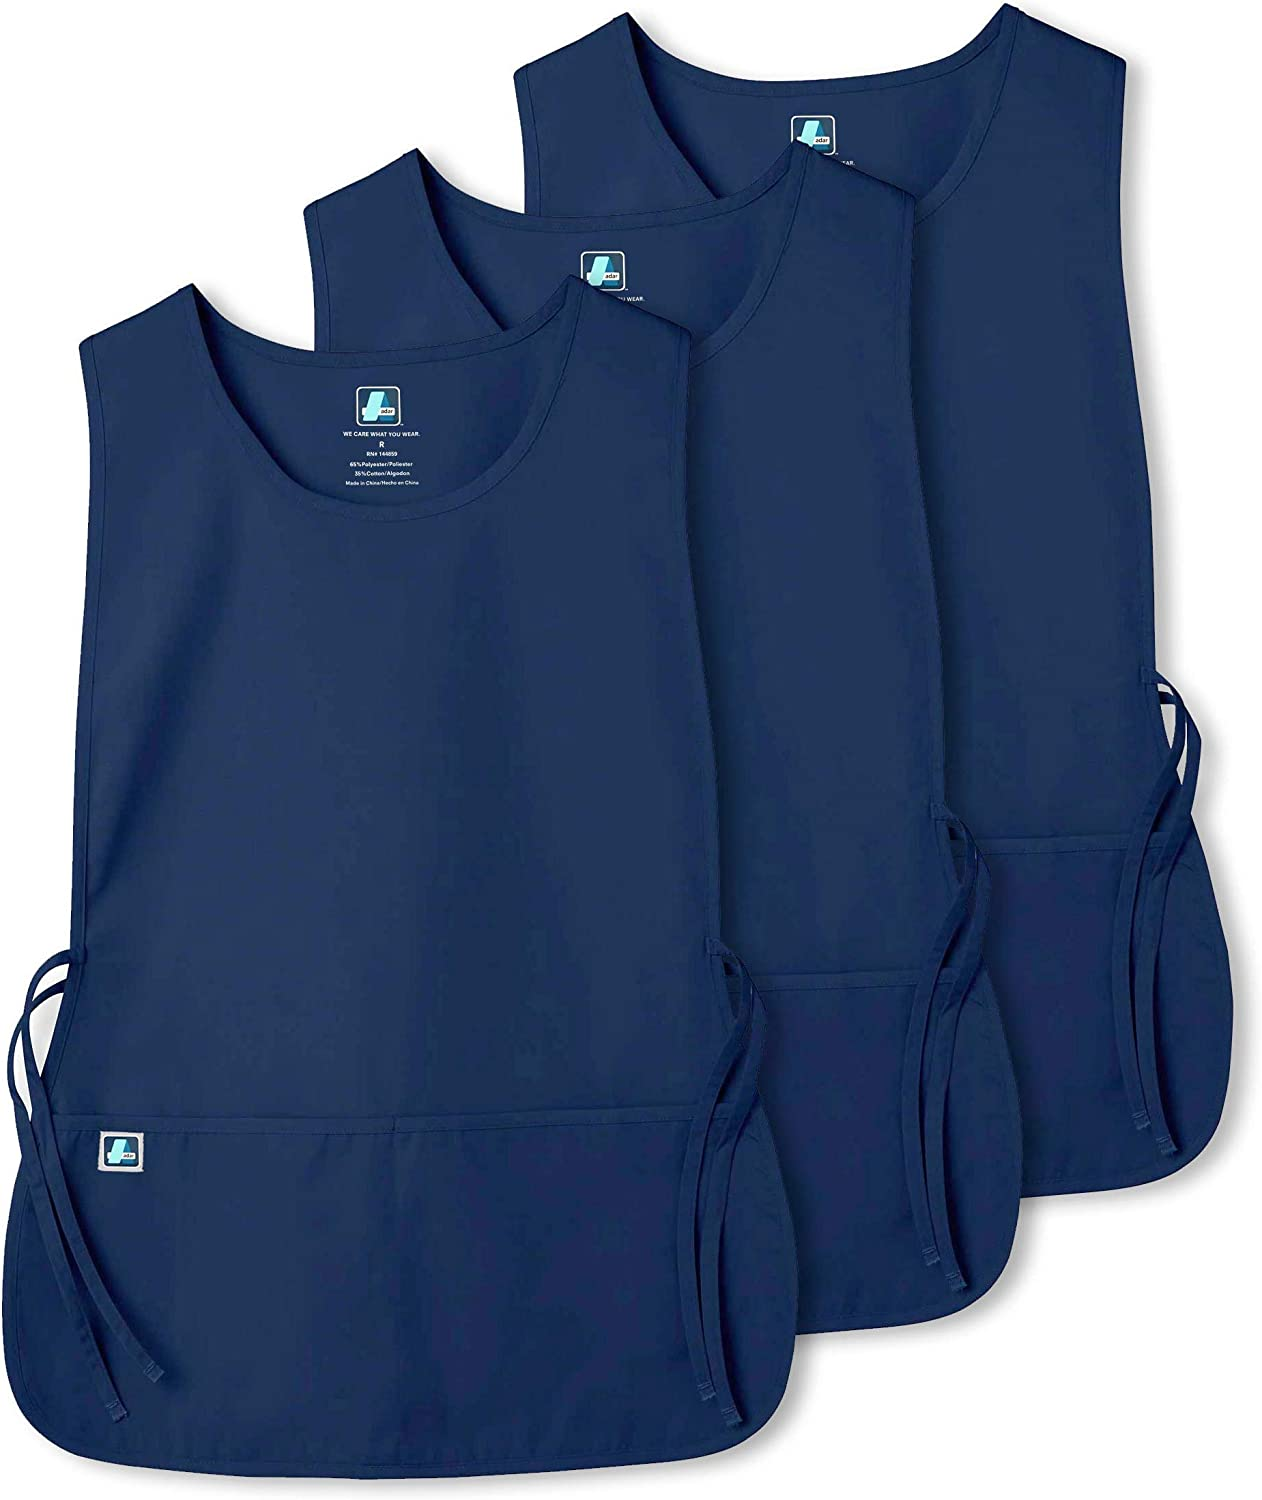 Available in 30 Colors X with 2 Pockets // Adjustable Ties HGR Adar Unisex Cobbler Apron 3 Pack 7023